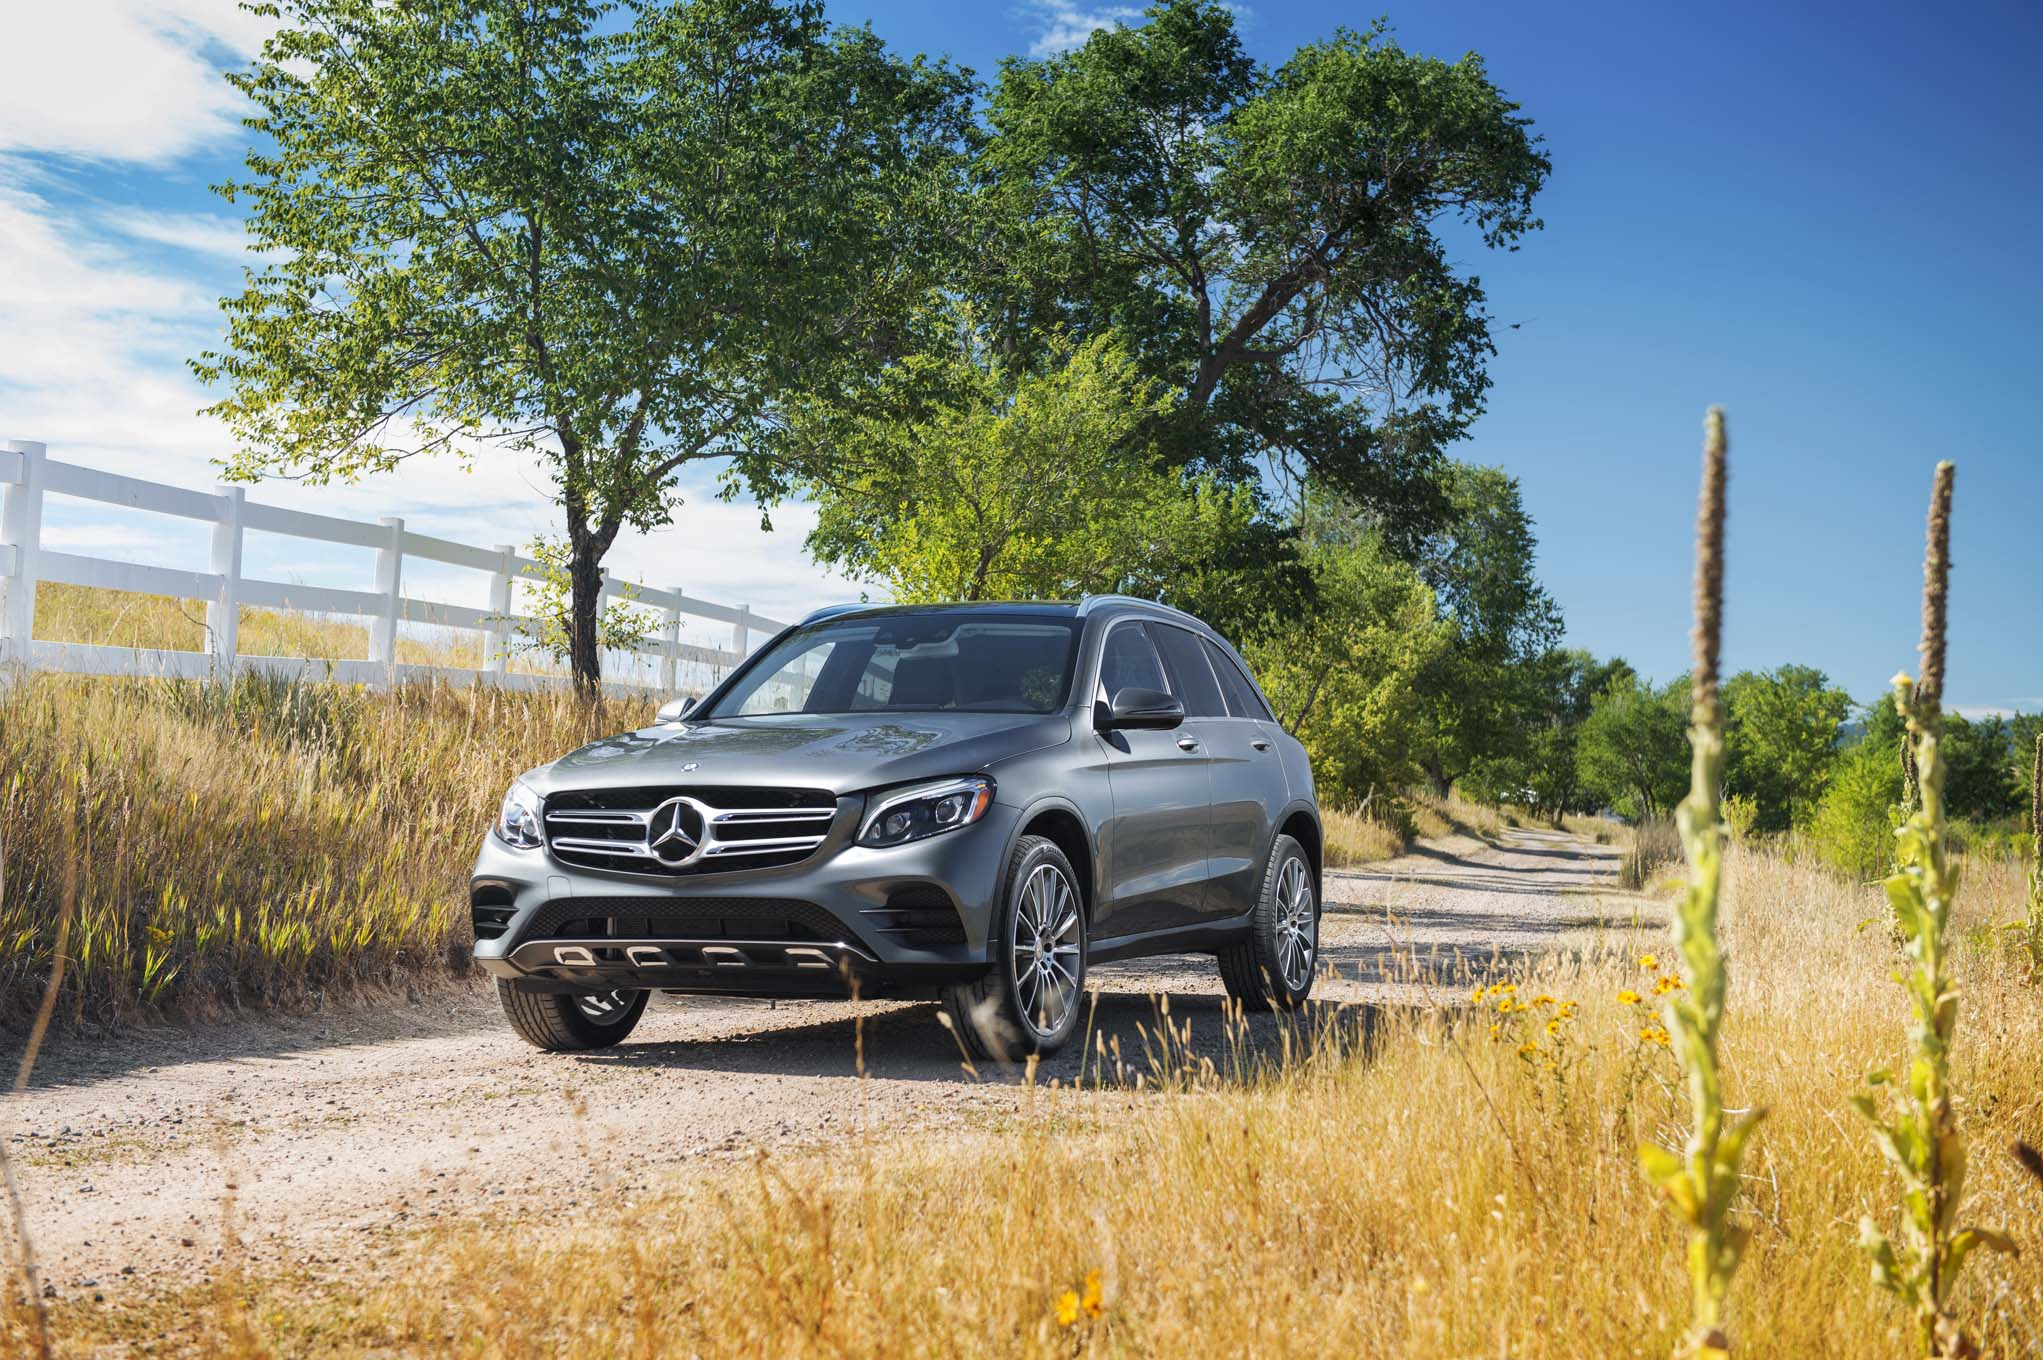 2016 Mercedes Benz GLC 300 4Matic Front Three Quarter 03